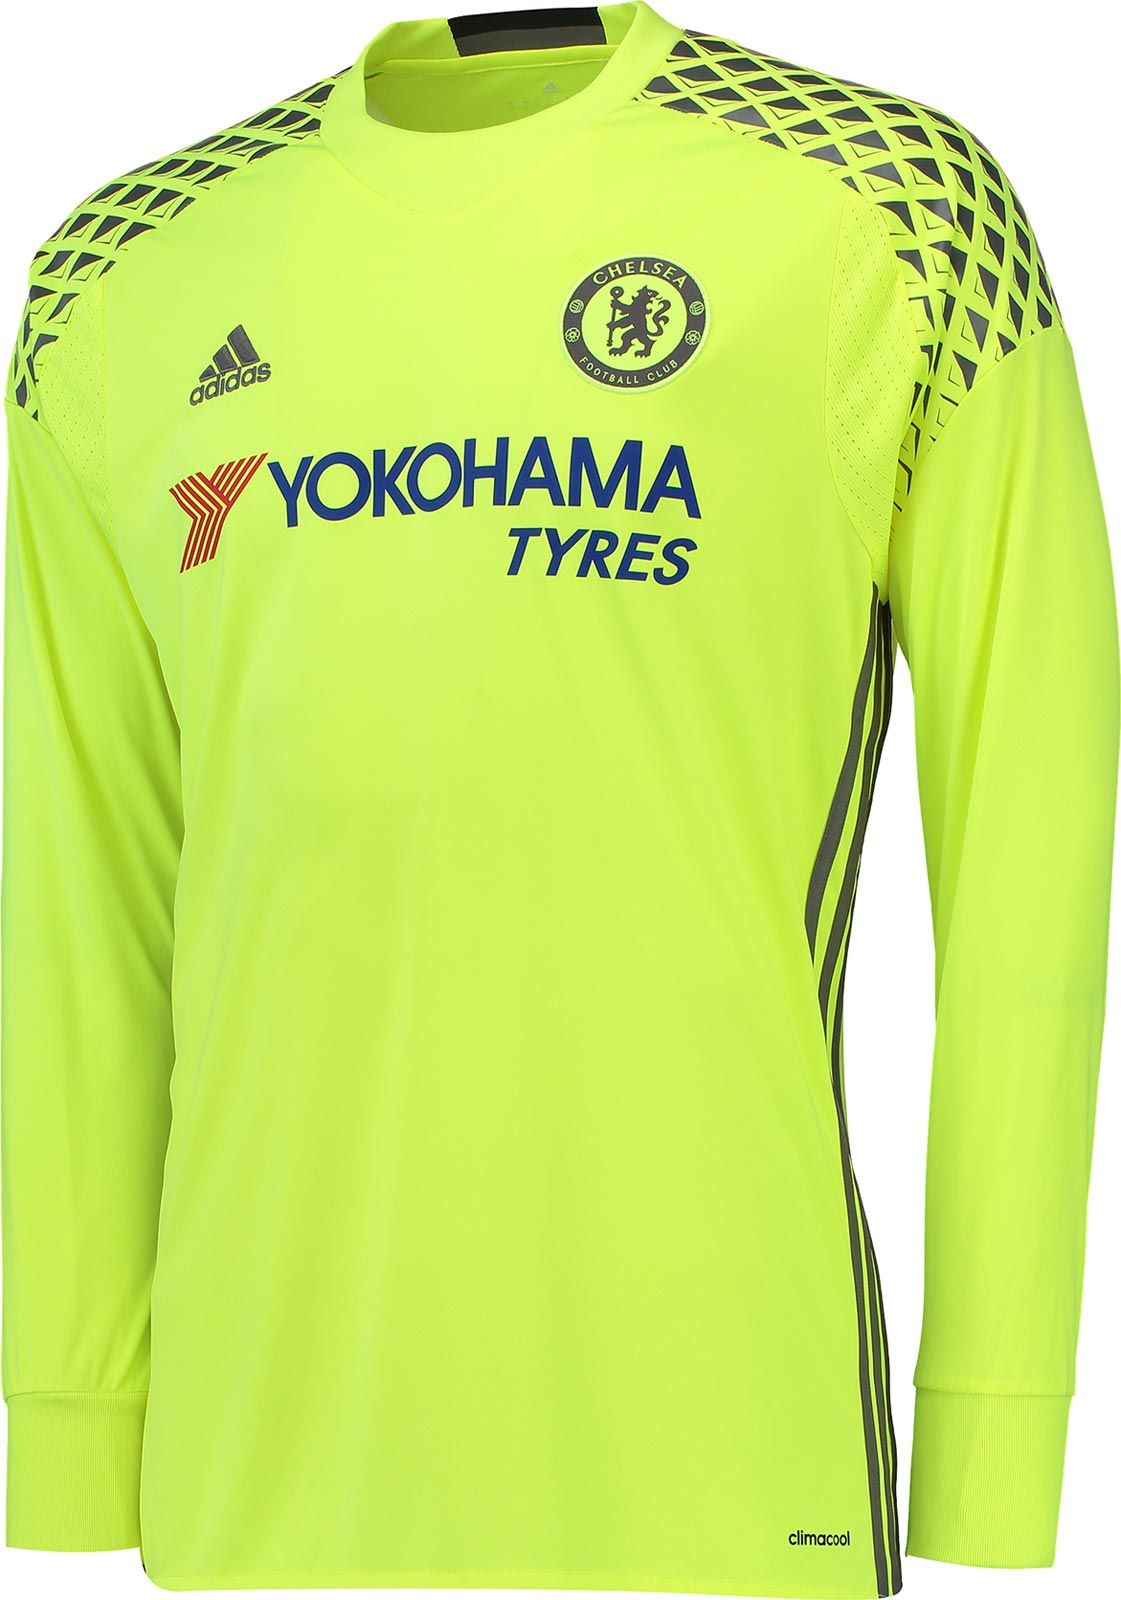 72d69a39c1d The new Chelsea goalkeeper kit introduces a garish design in yellow and  grey